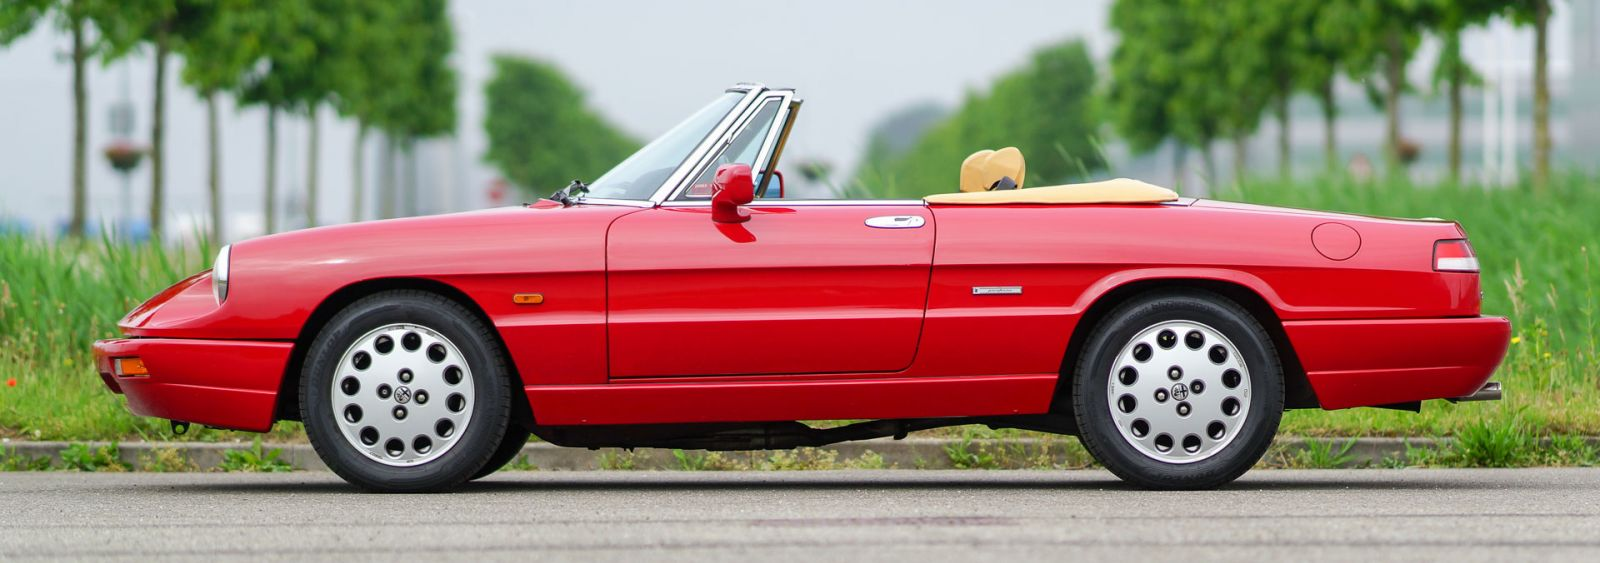 alfa romeo spider 2.0, 1991 - welcome to classicargarage